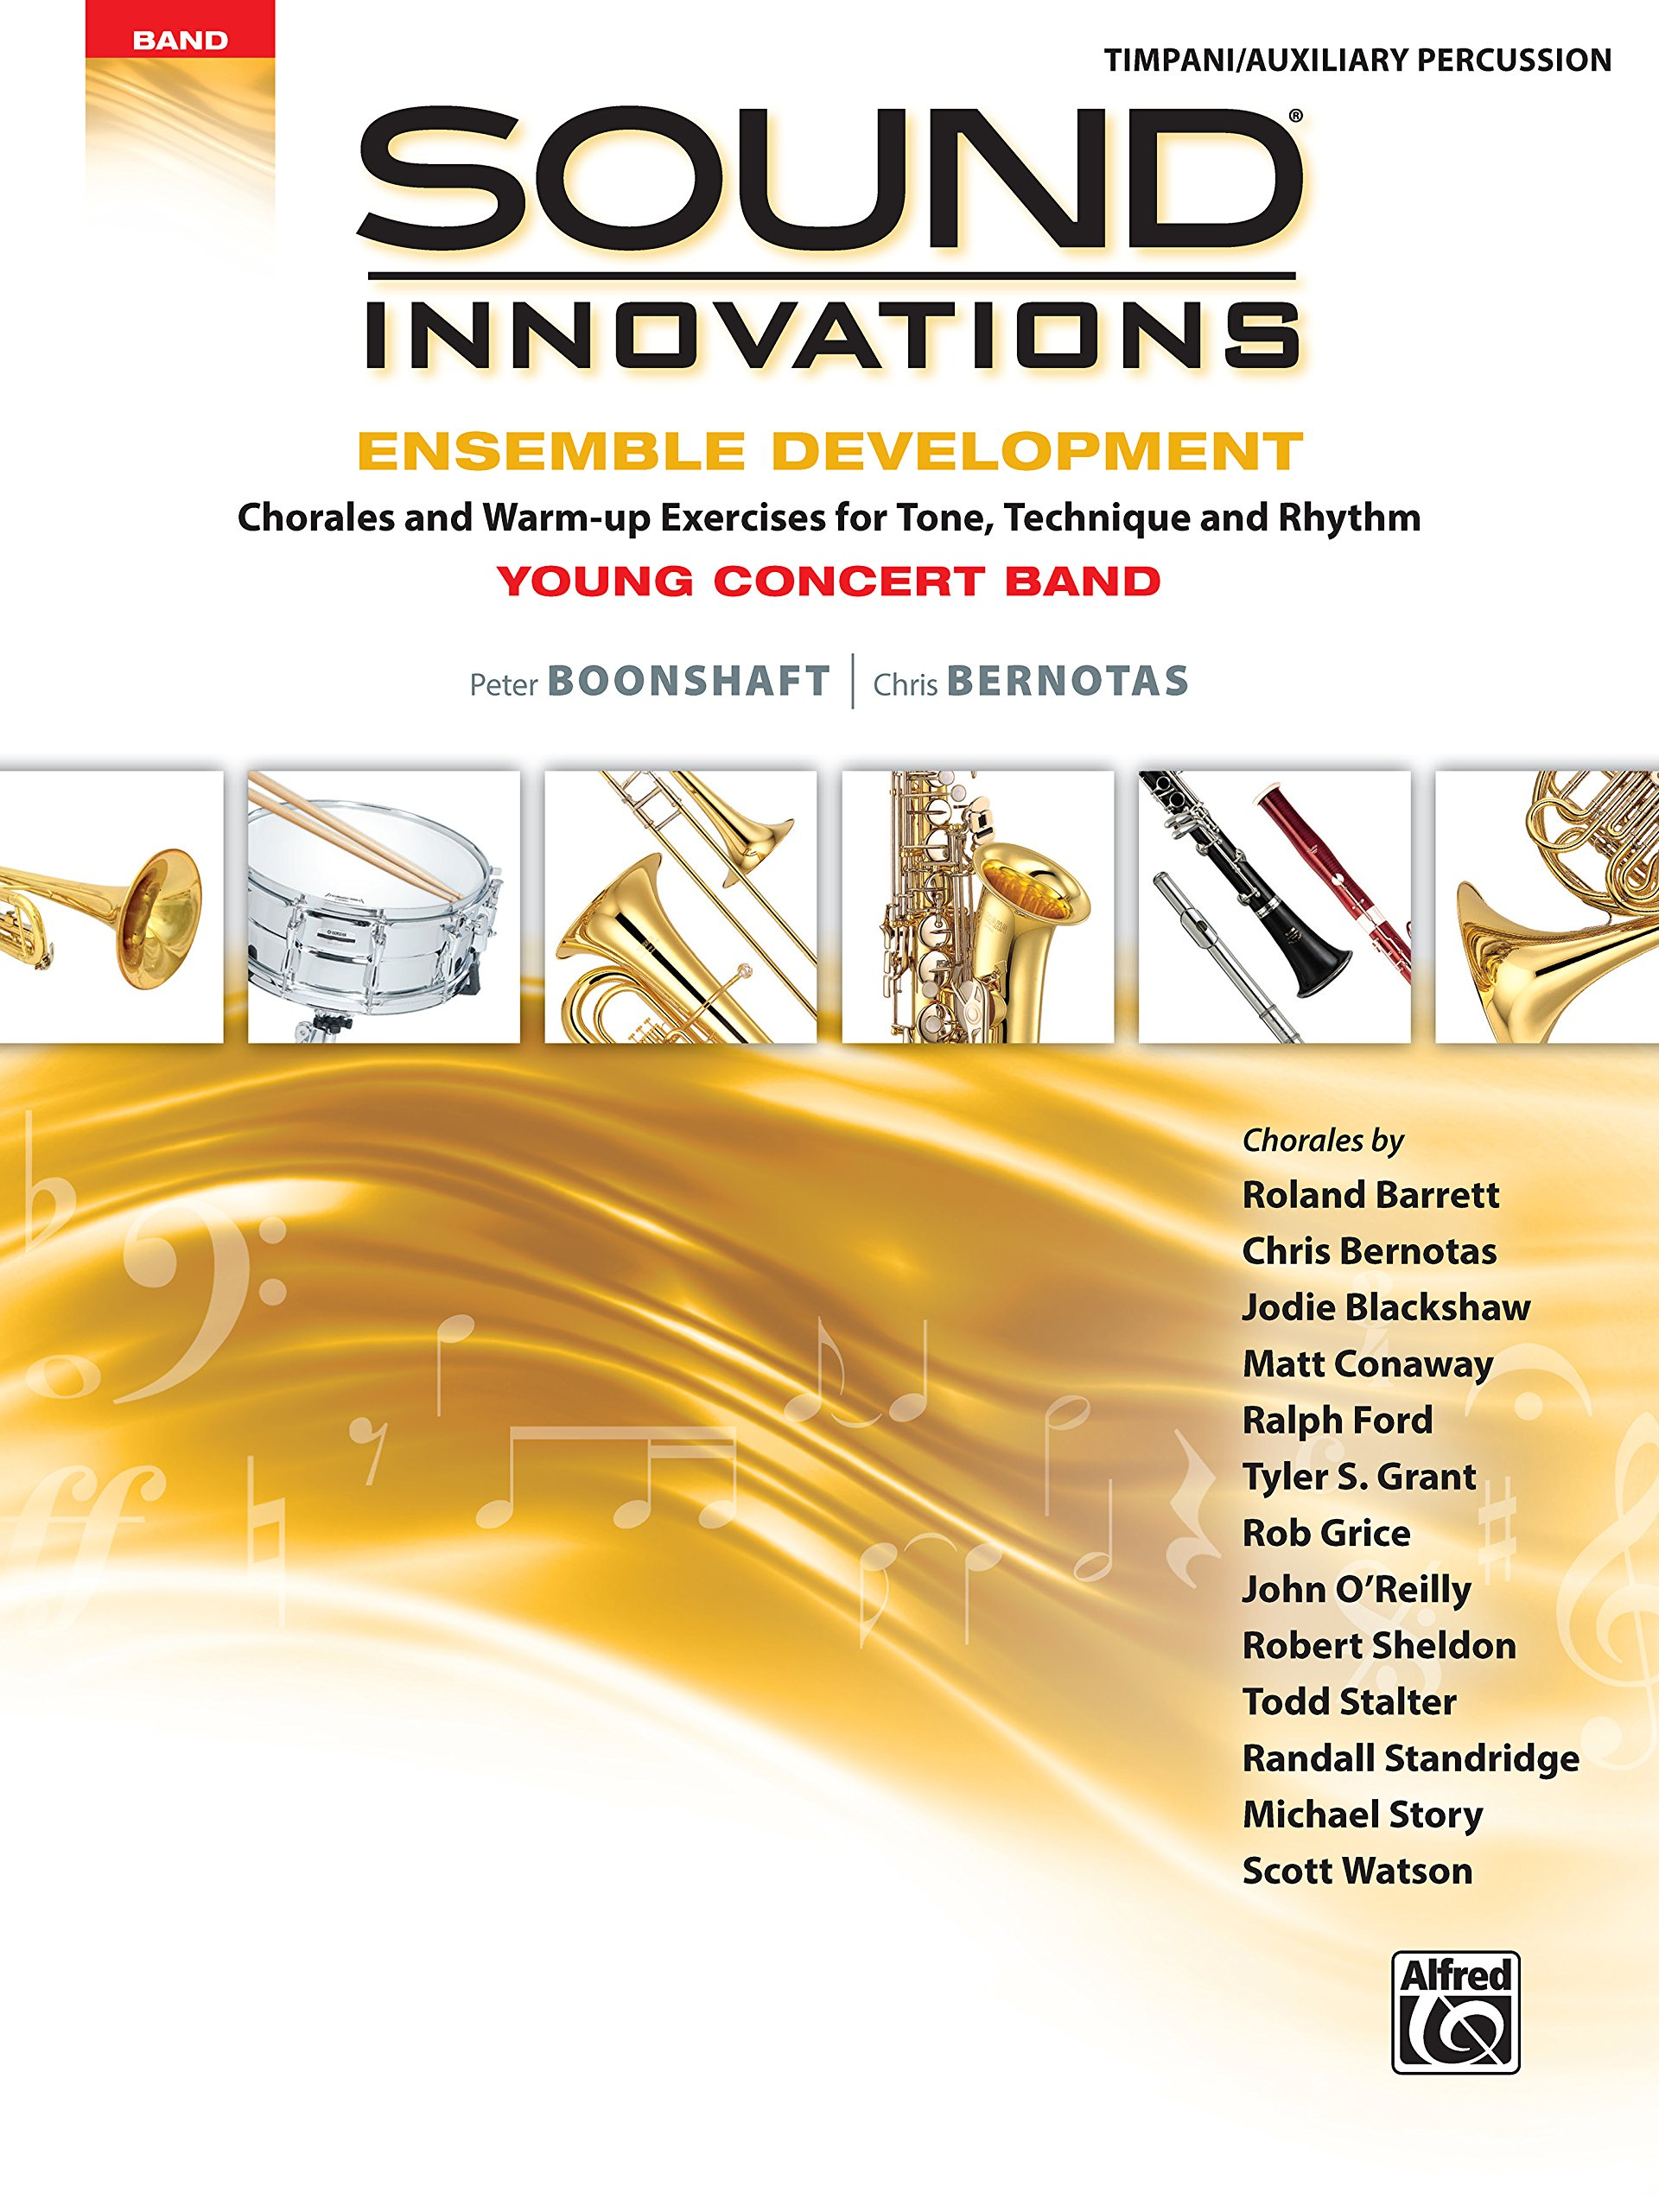 Sound Innovations for Concert Band -- Ensemble Development for Young Concert Band: Chorales and Warm-up Exercises for Tone, Technique, and Rhythm (Timpani/Auxiliary Percussion)